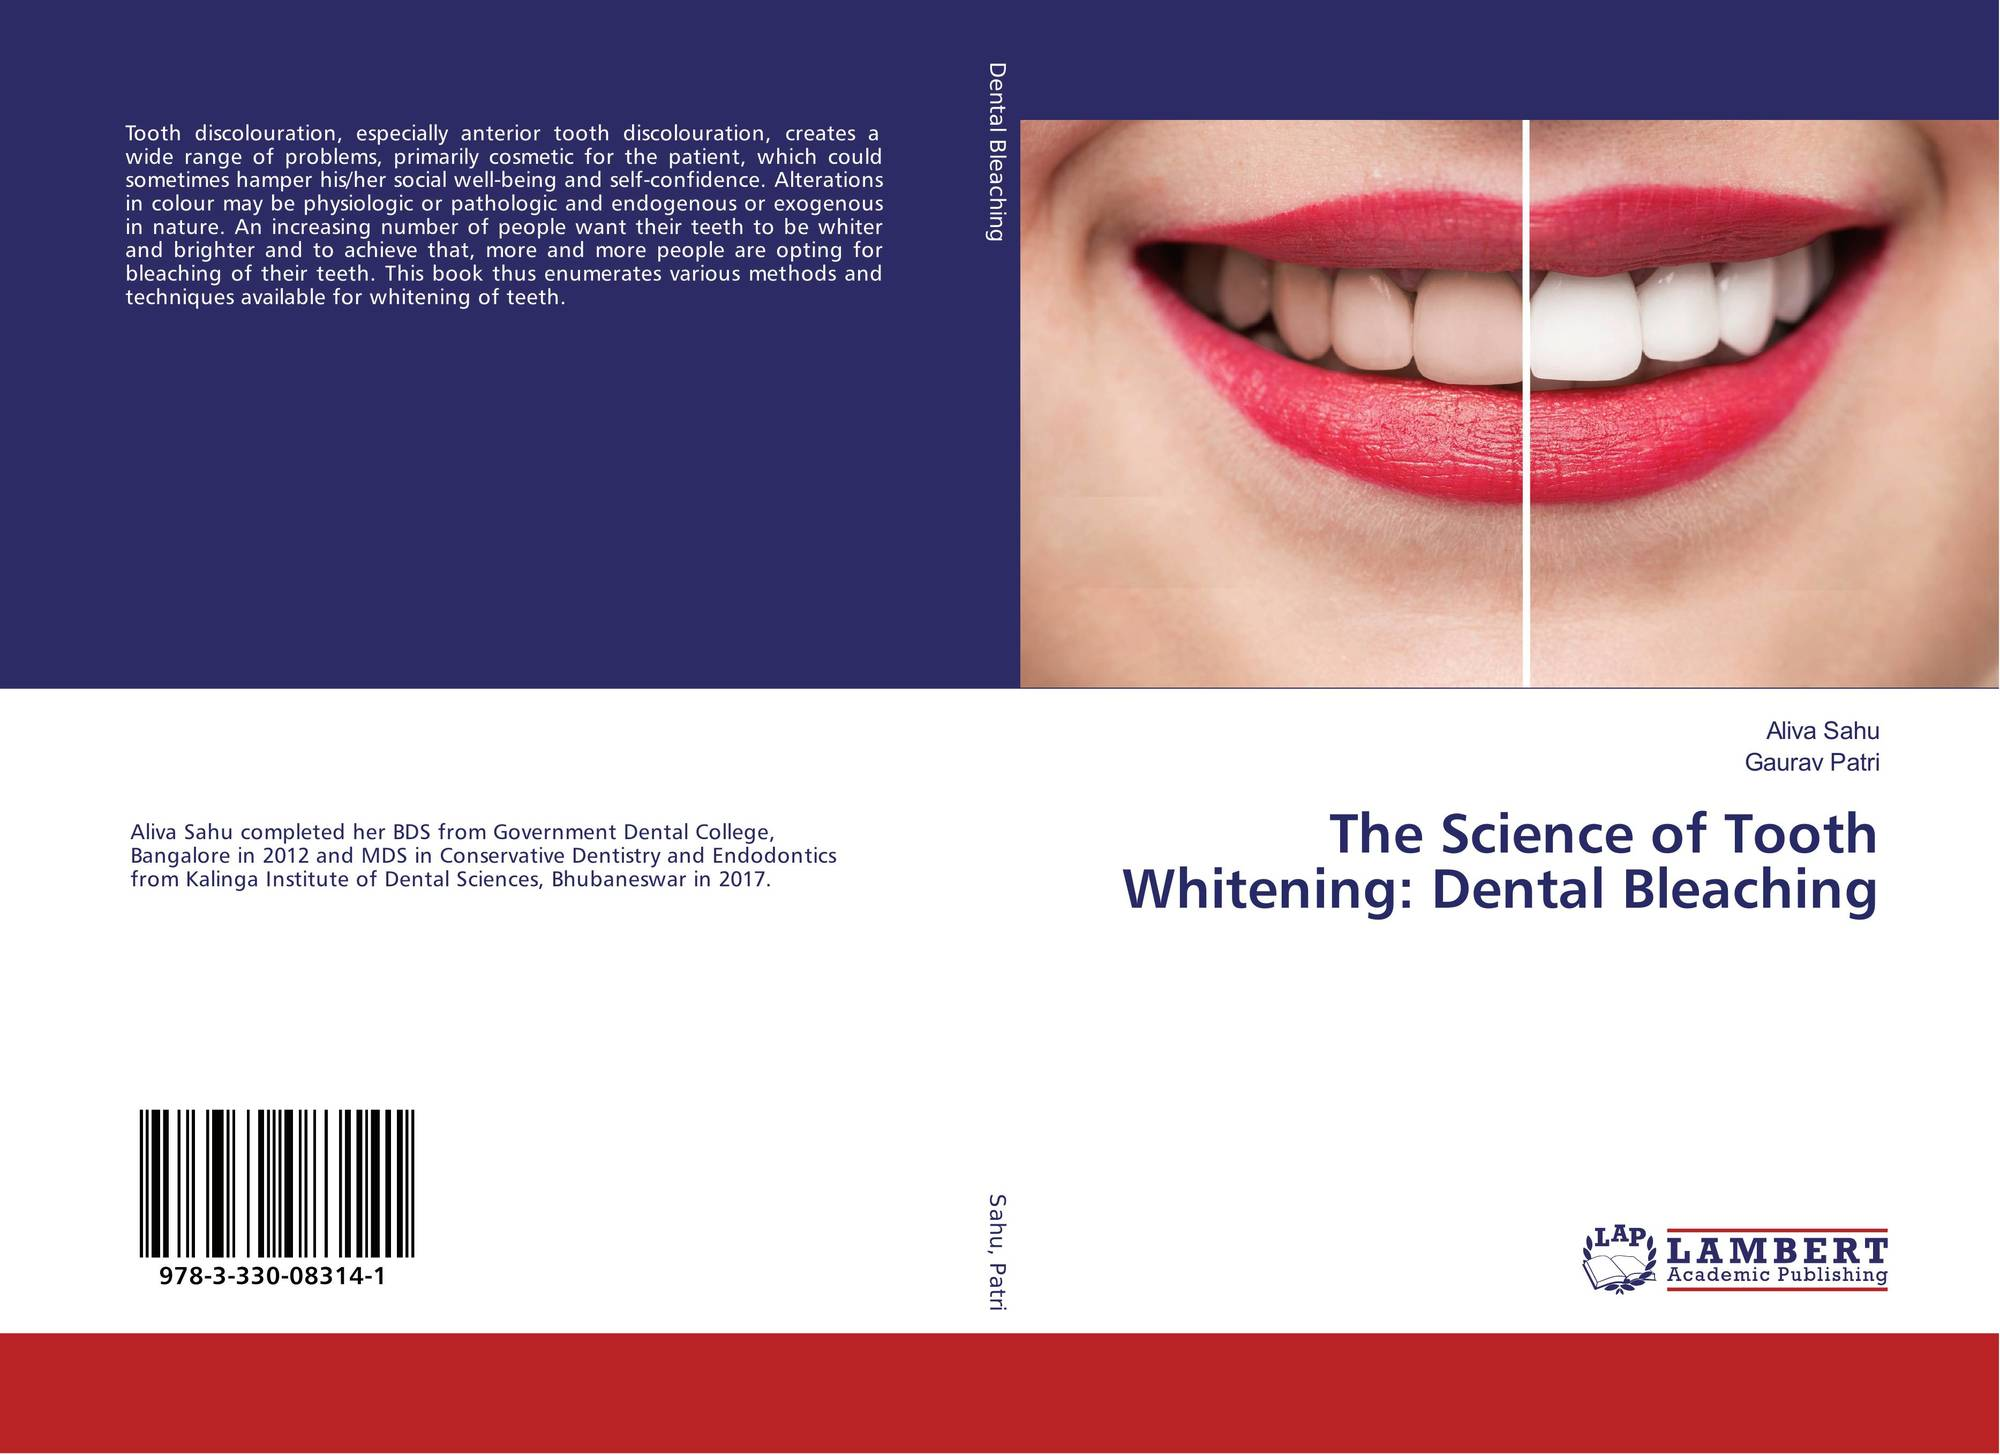 White Teeth Book Cover ~ The science of tooth whitening dental bleaching